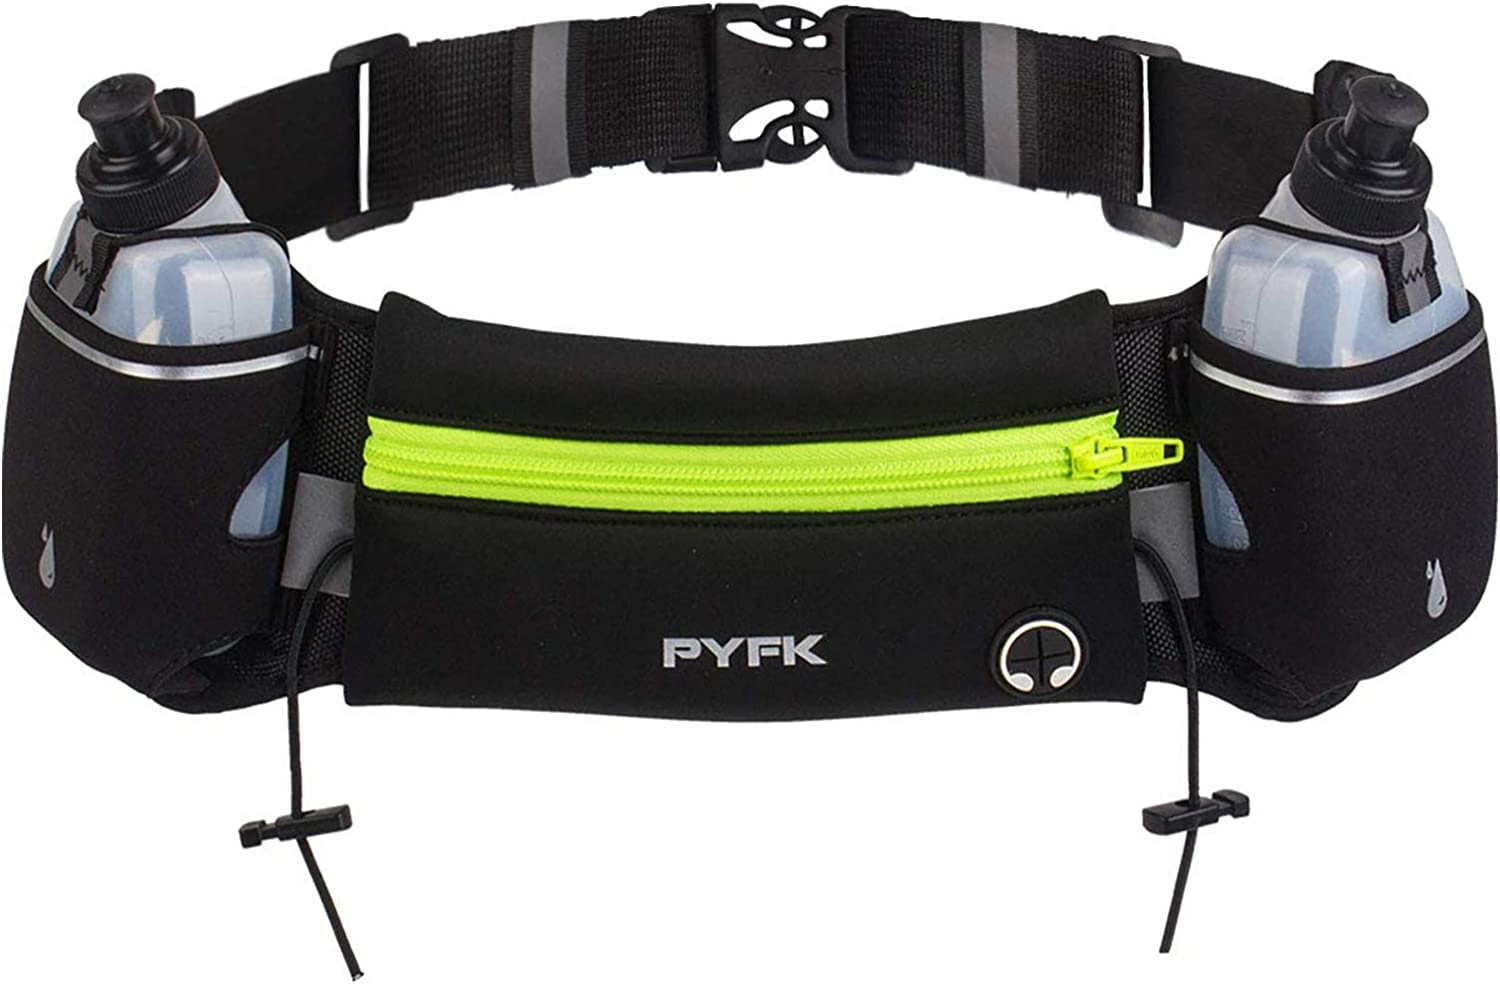 PYFK Upgraded Running Belt with Water Bottles, Hydration Belt for Men and Women, Water Bottle Holder Running Pouch Belt, Fanny Pack Fits 6.5 inches Phones, Waist pack for Running Hiking Climbing